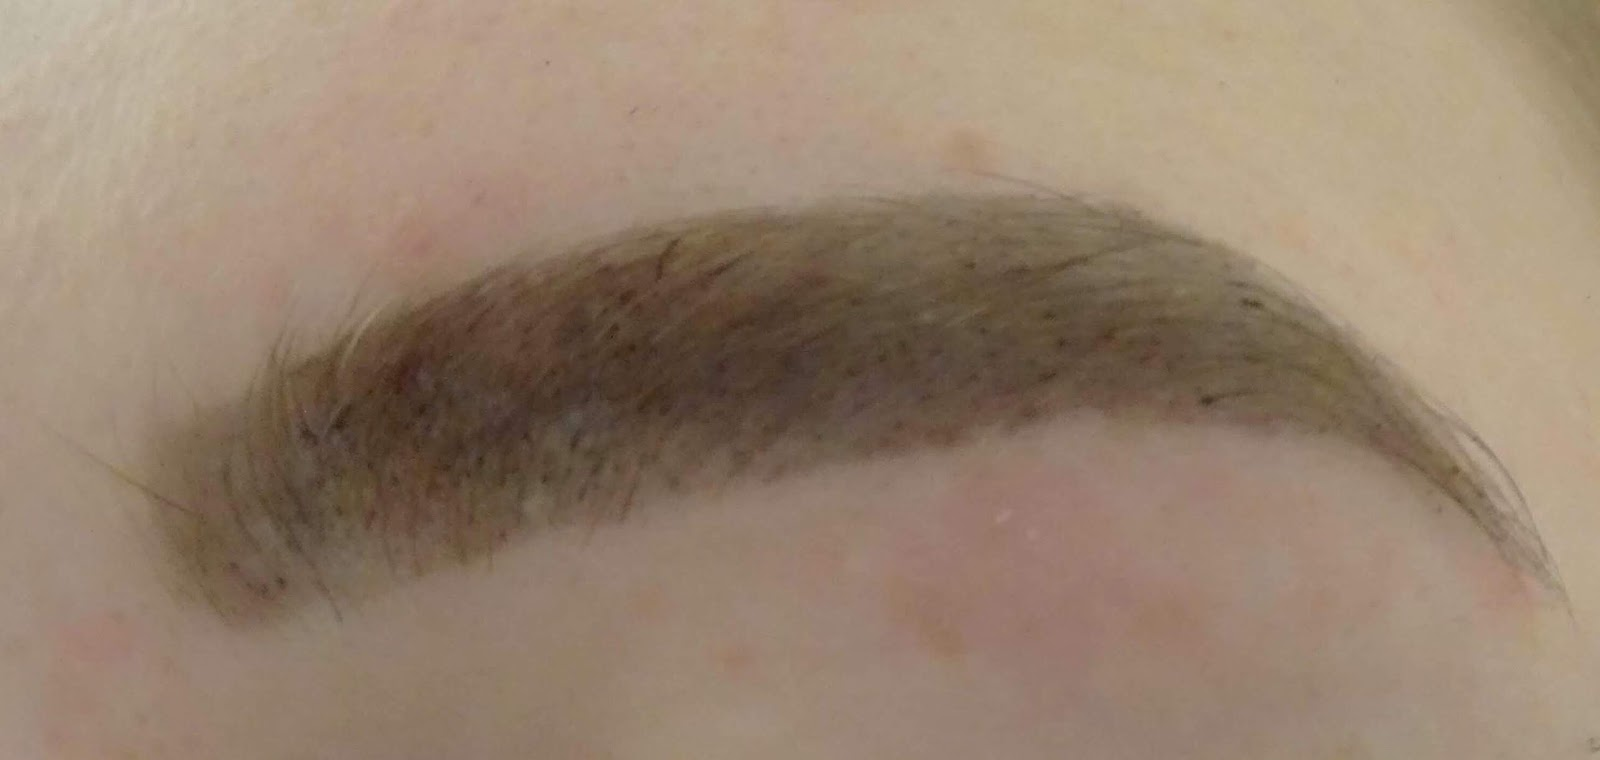 Maybelline Brow Tattoo After Photo